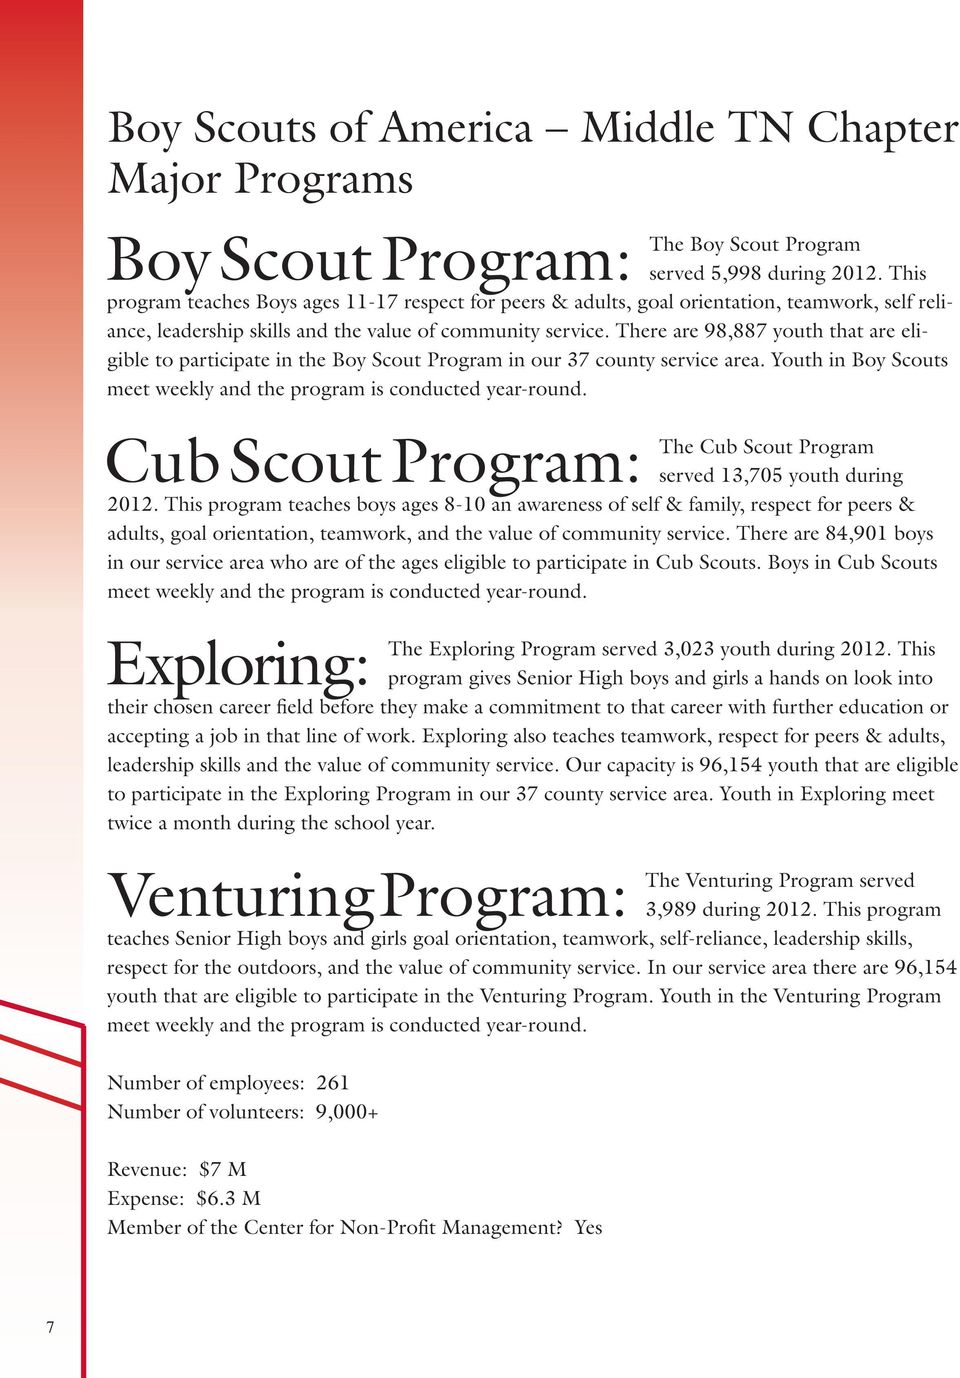 There are 98,887 youth that are eligible to participate in the Boy Scout Program in our 37 county service area. Youth in Boy Scouts meet weekly and the program is conducted year-round.